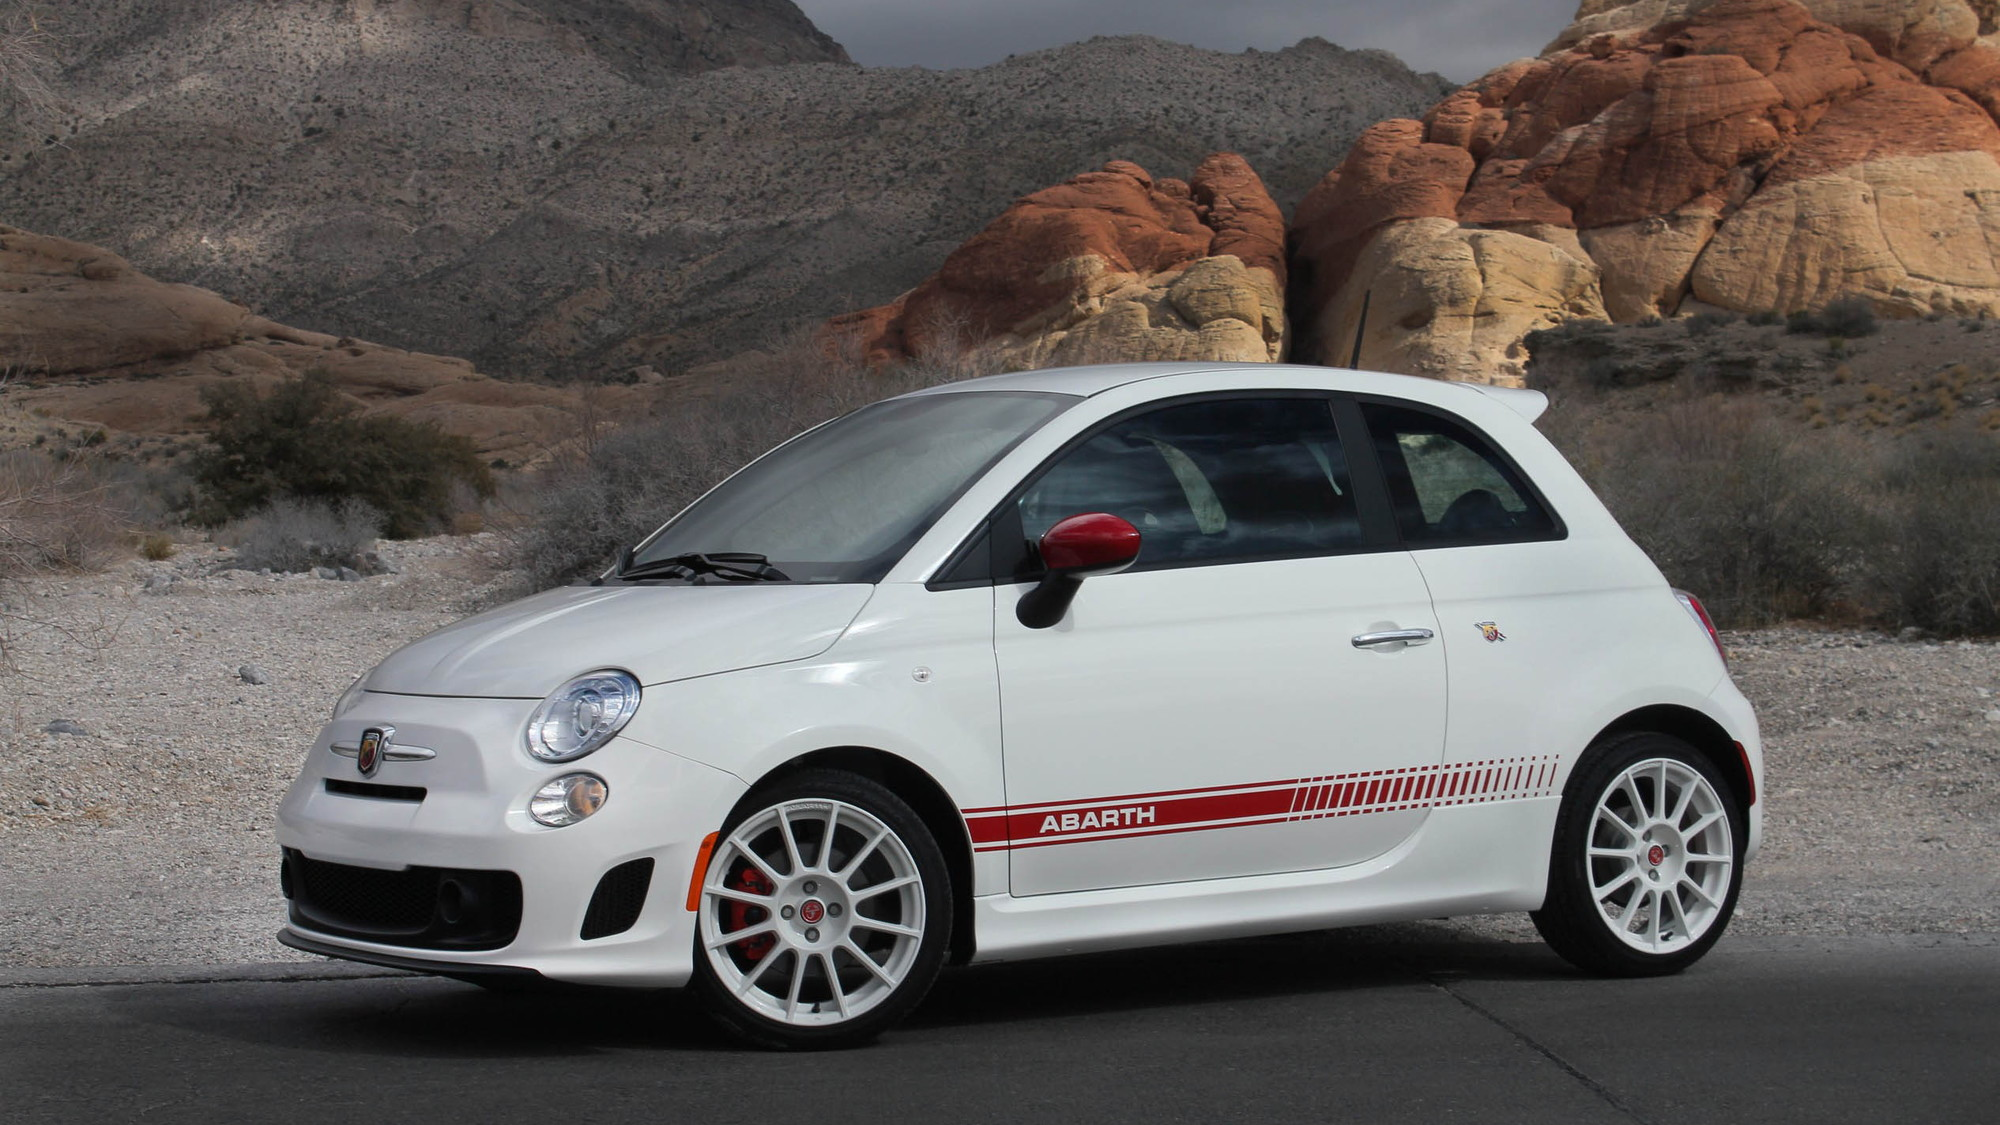 2012 Fiat 500 Abarth first drive